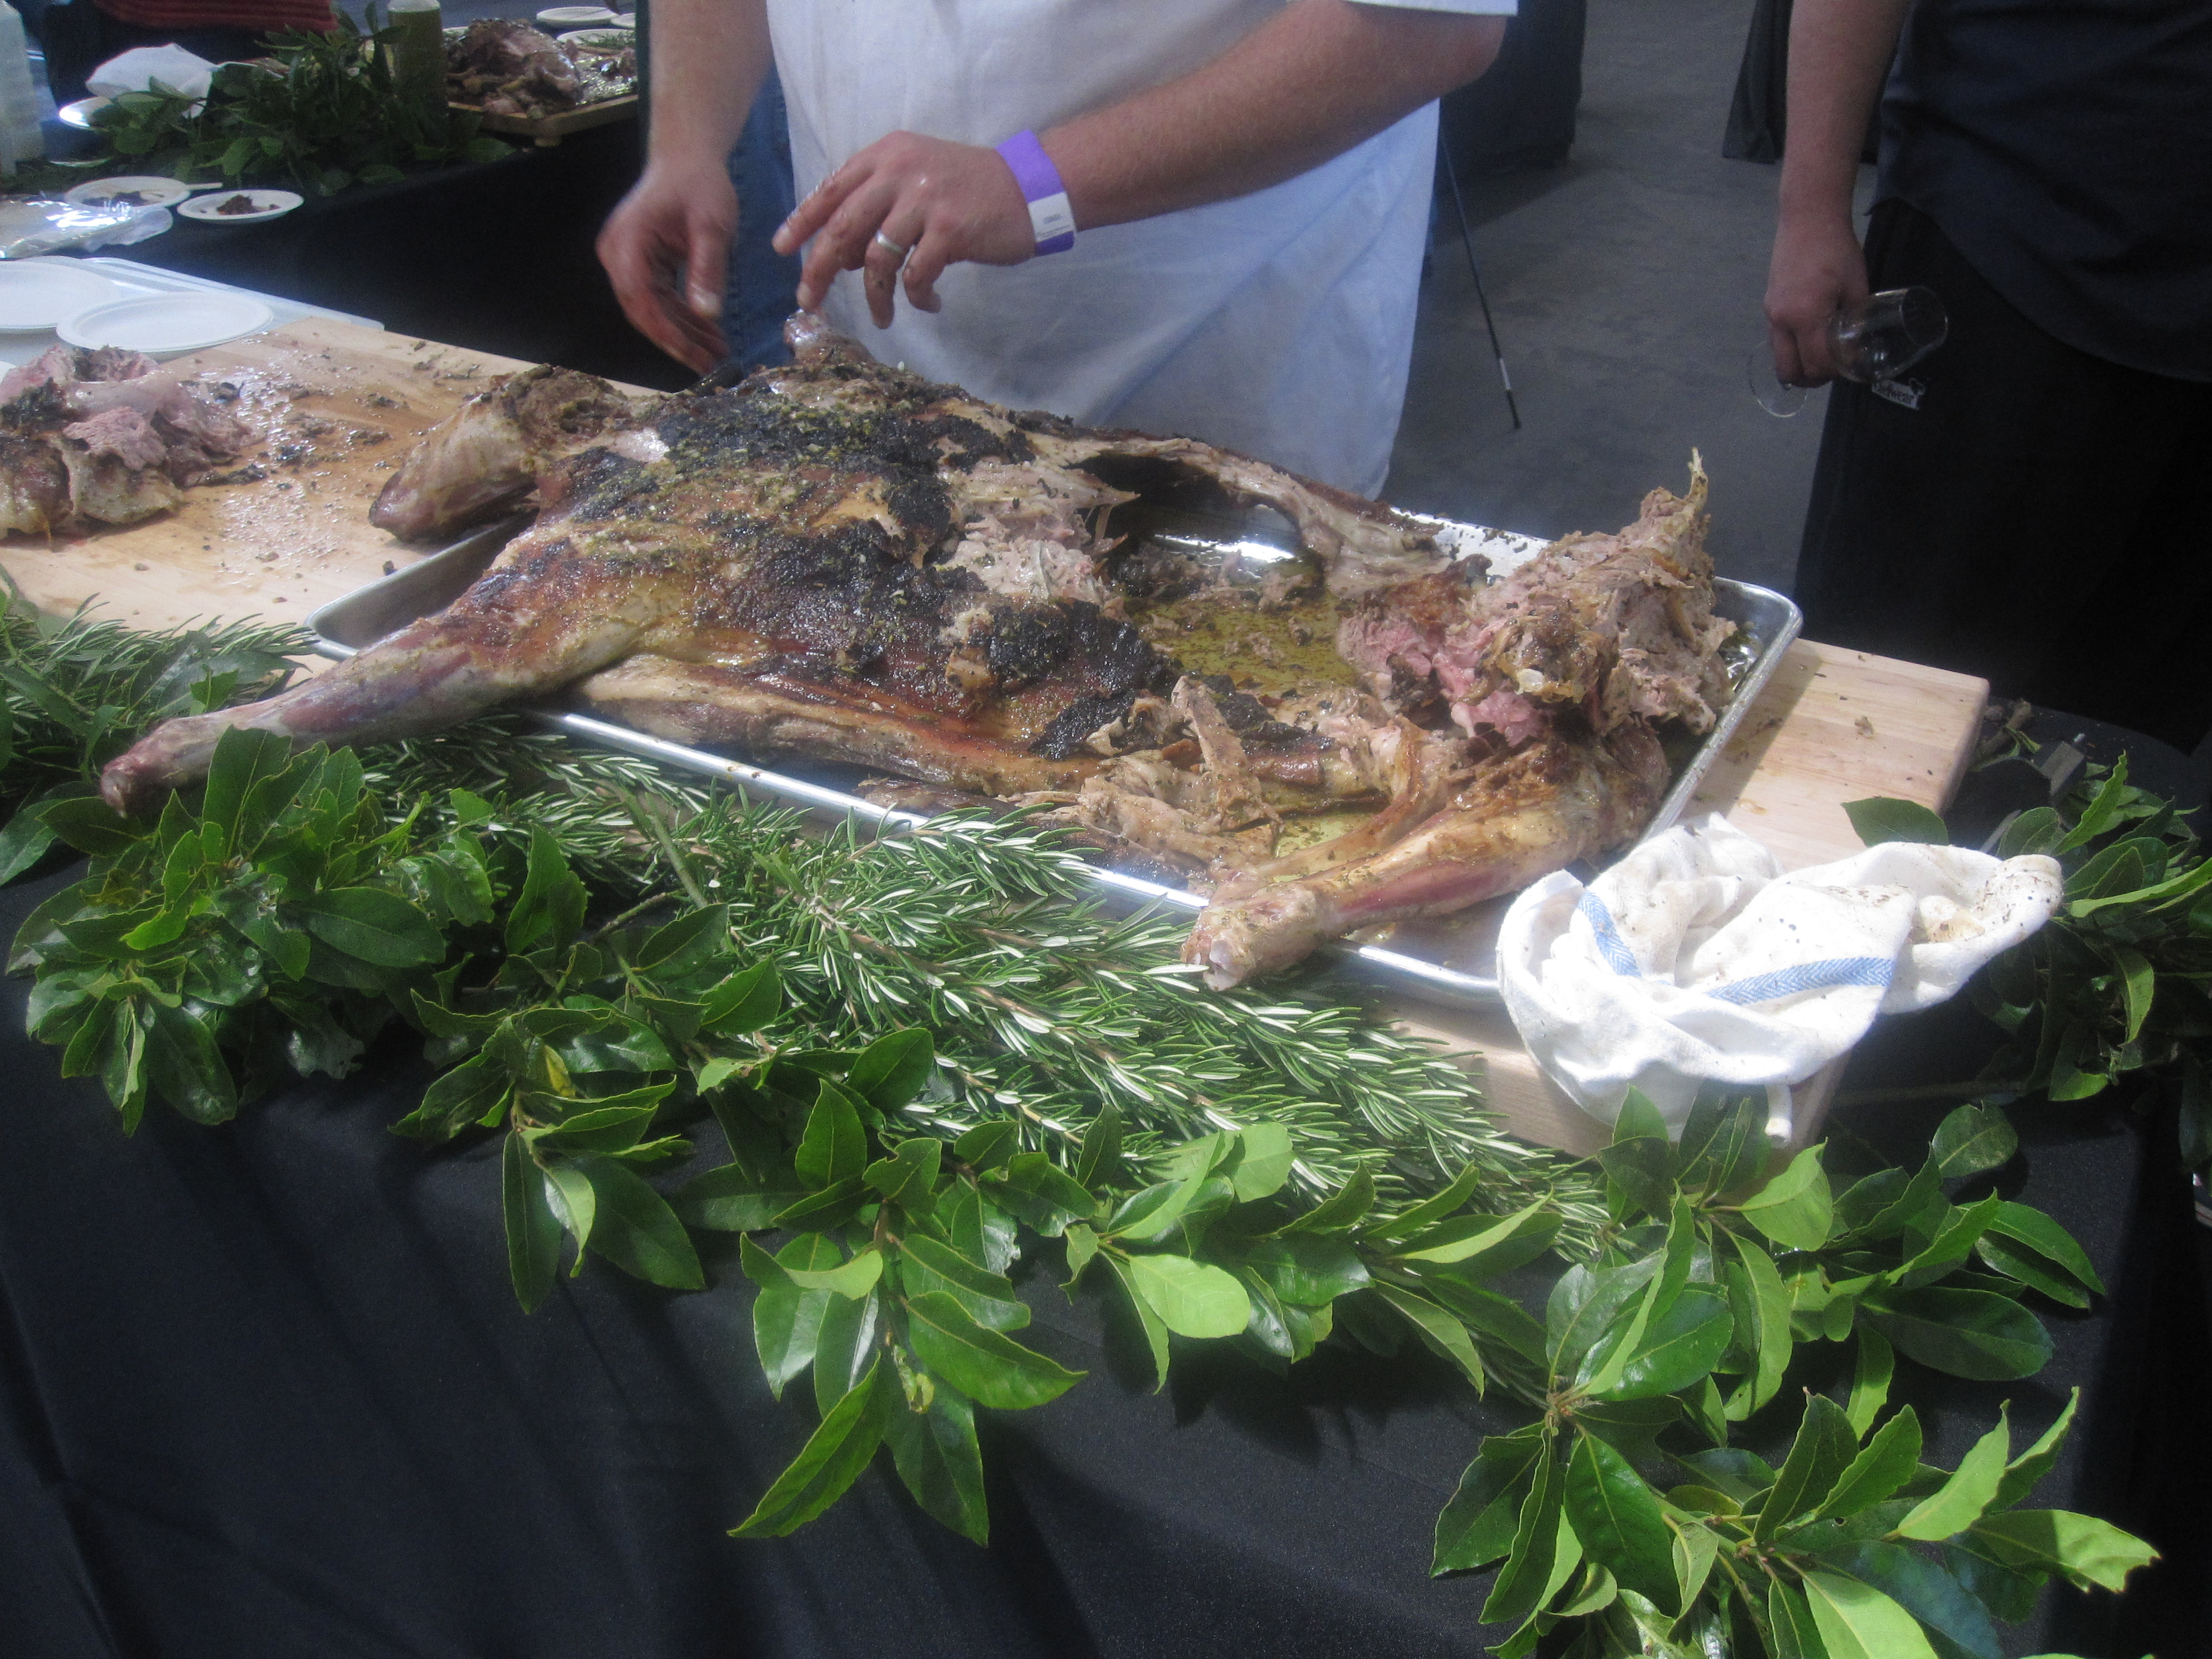 After the judging concluded, they brought out a whole roasted lamb and sliced it up for everyone to enjoy.